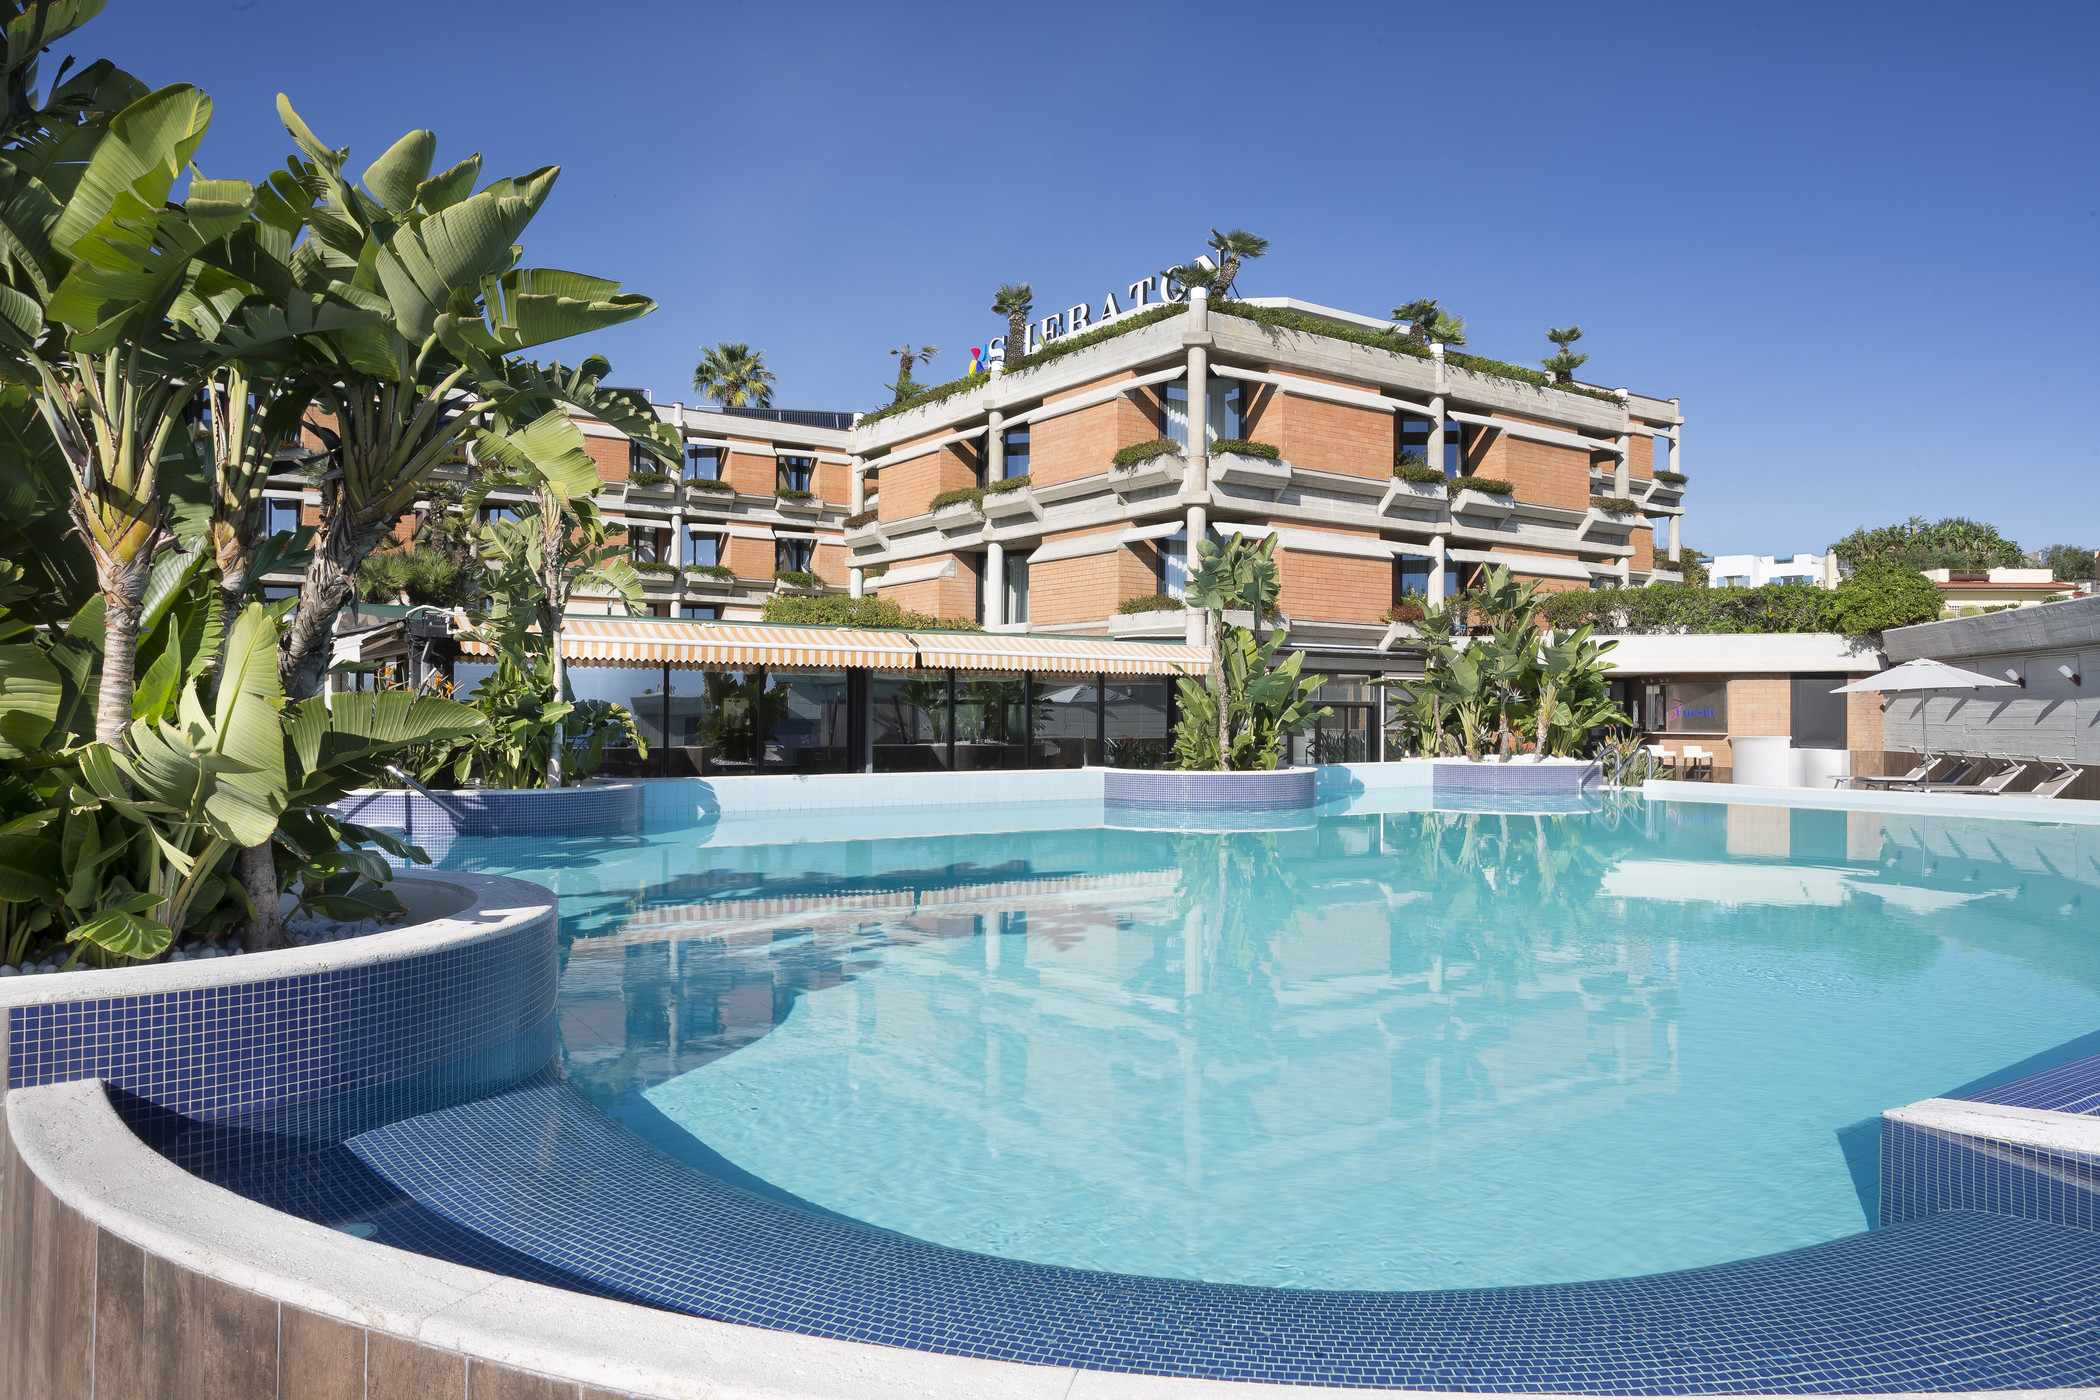 four-points-by-sheraton-catania-pool-externa-view